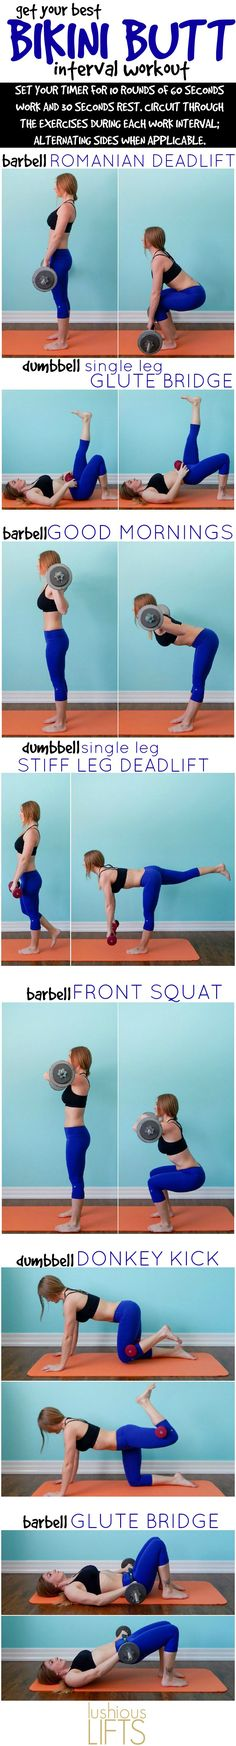 Get Your Best Bikini Butt !!! Get BOOTY! Add this workout to your current fitness routine (eliminating any other lower body days) for about 6 weeks then switch your routine adding new exercises for even better results!!